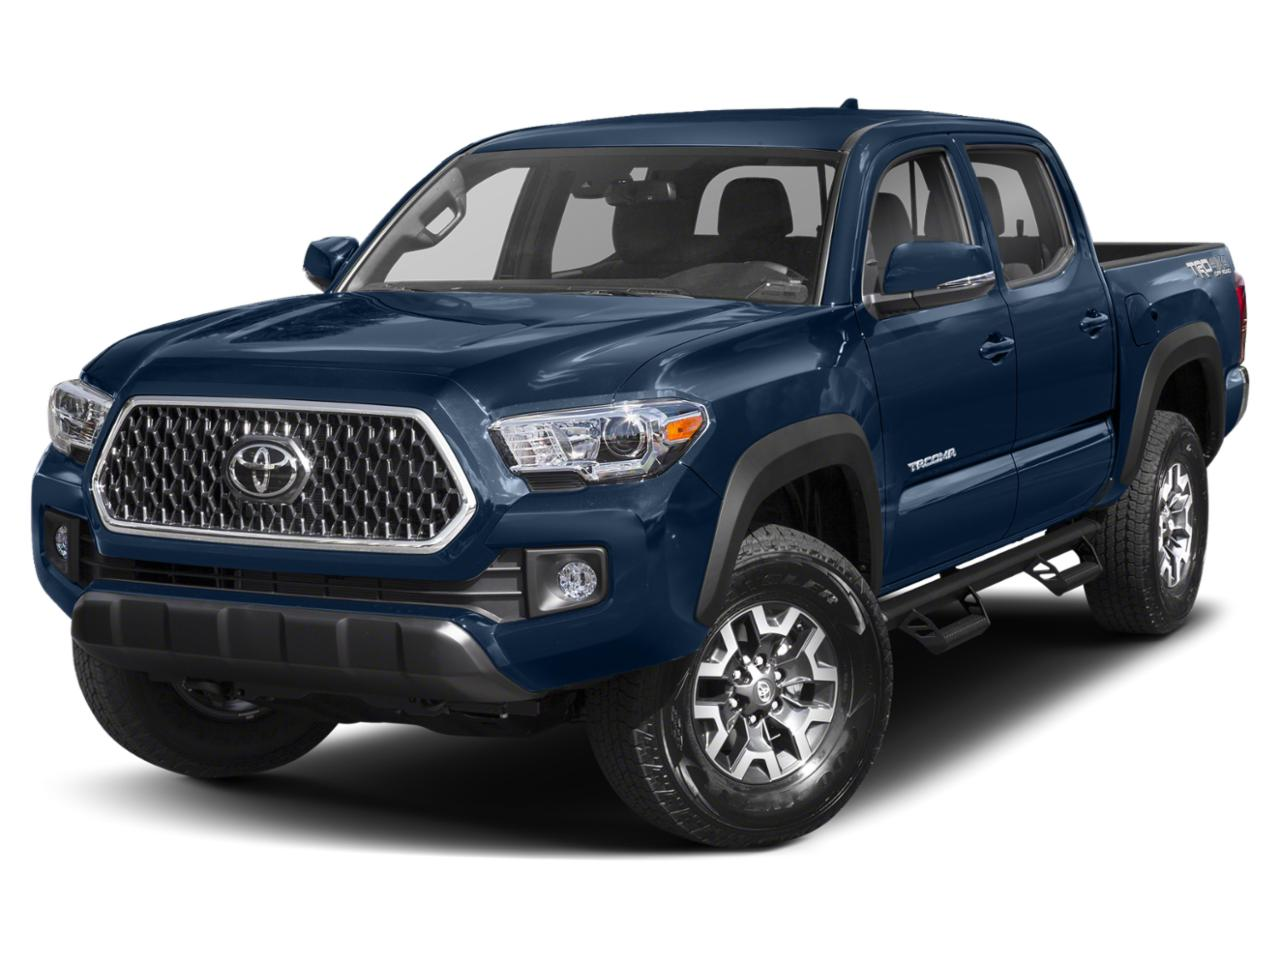 2019 Toyota Tacoma 4WD Vehicle Photo in San Angelo, TX 76901